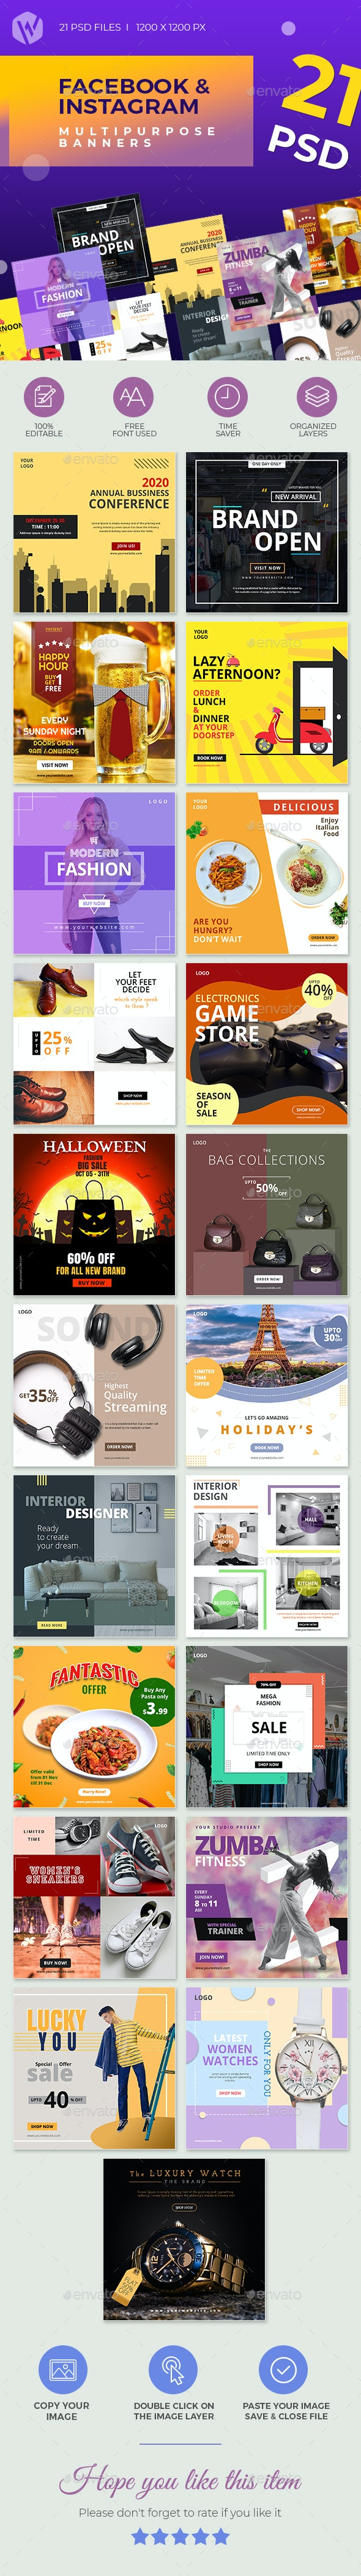 21 - Facebook & Instagram Banners - Social Media Web Elements